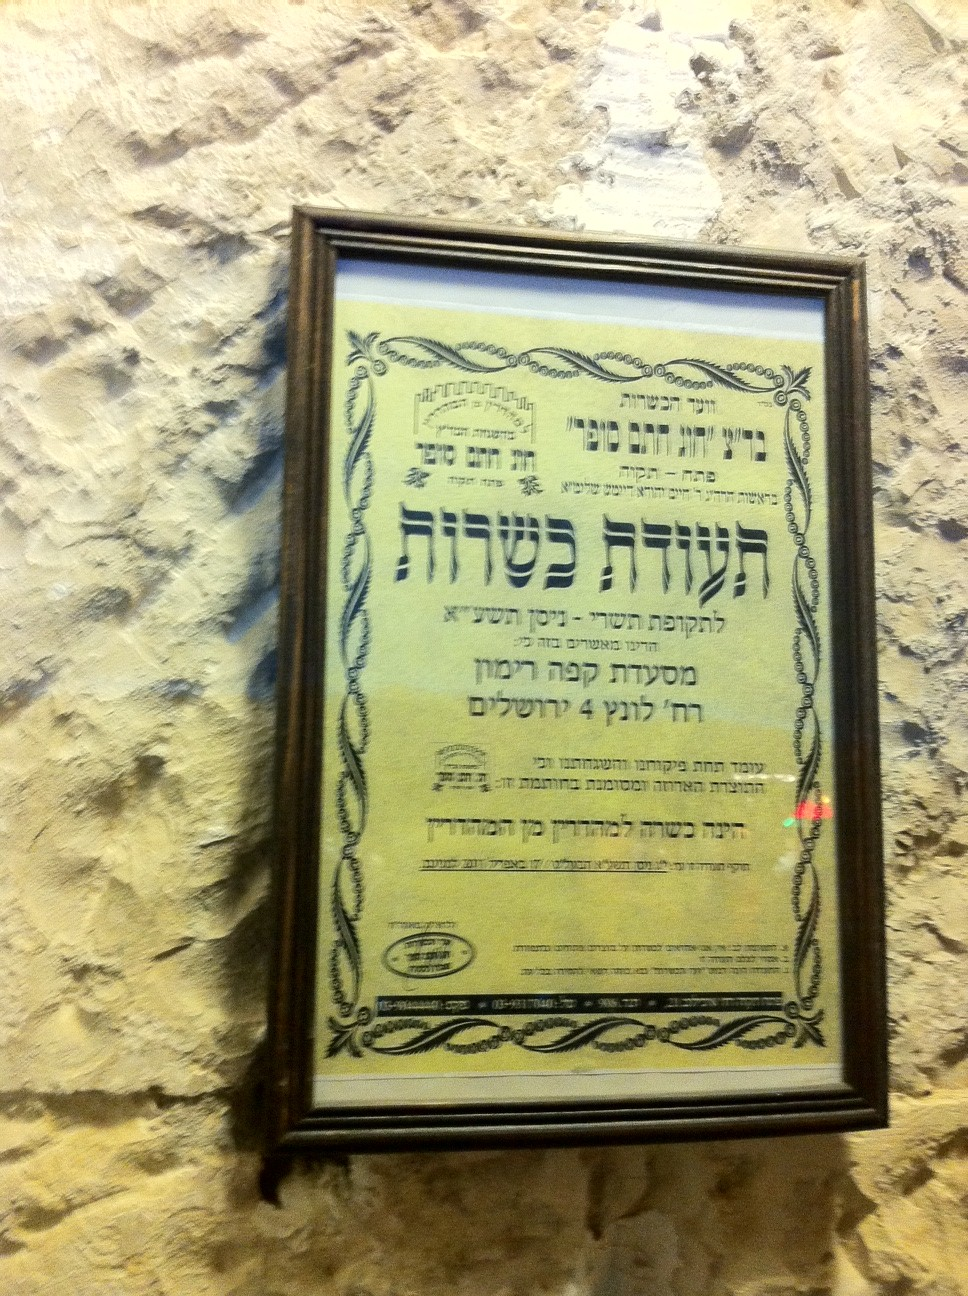 Jerusalem kosher news recognized kashrut agencies in israel chatam sofer petach tikvah biocorpaavc Image collections